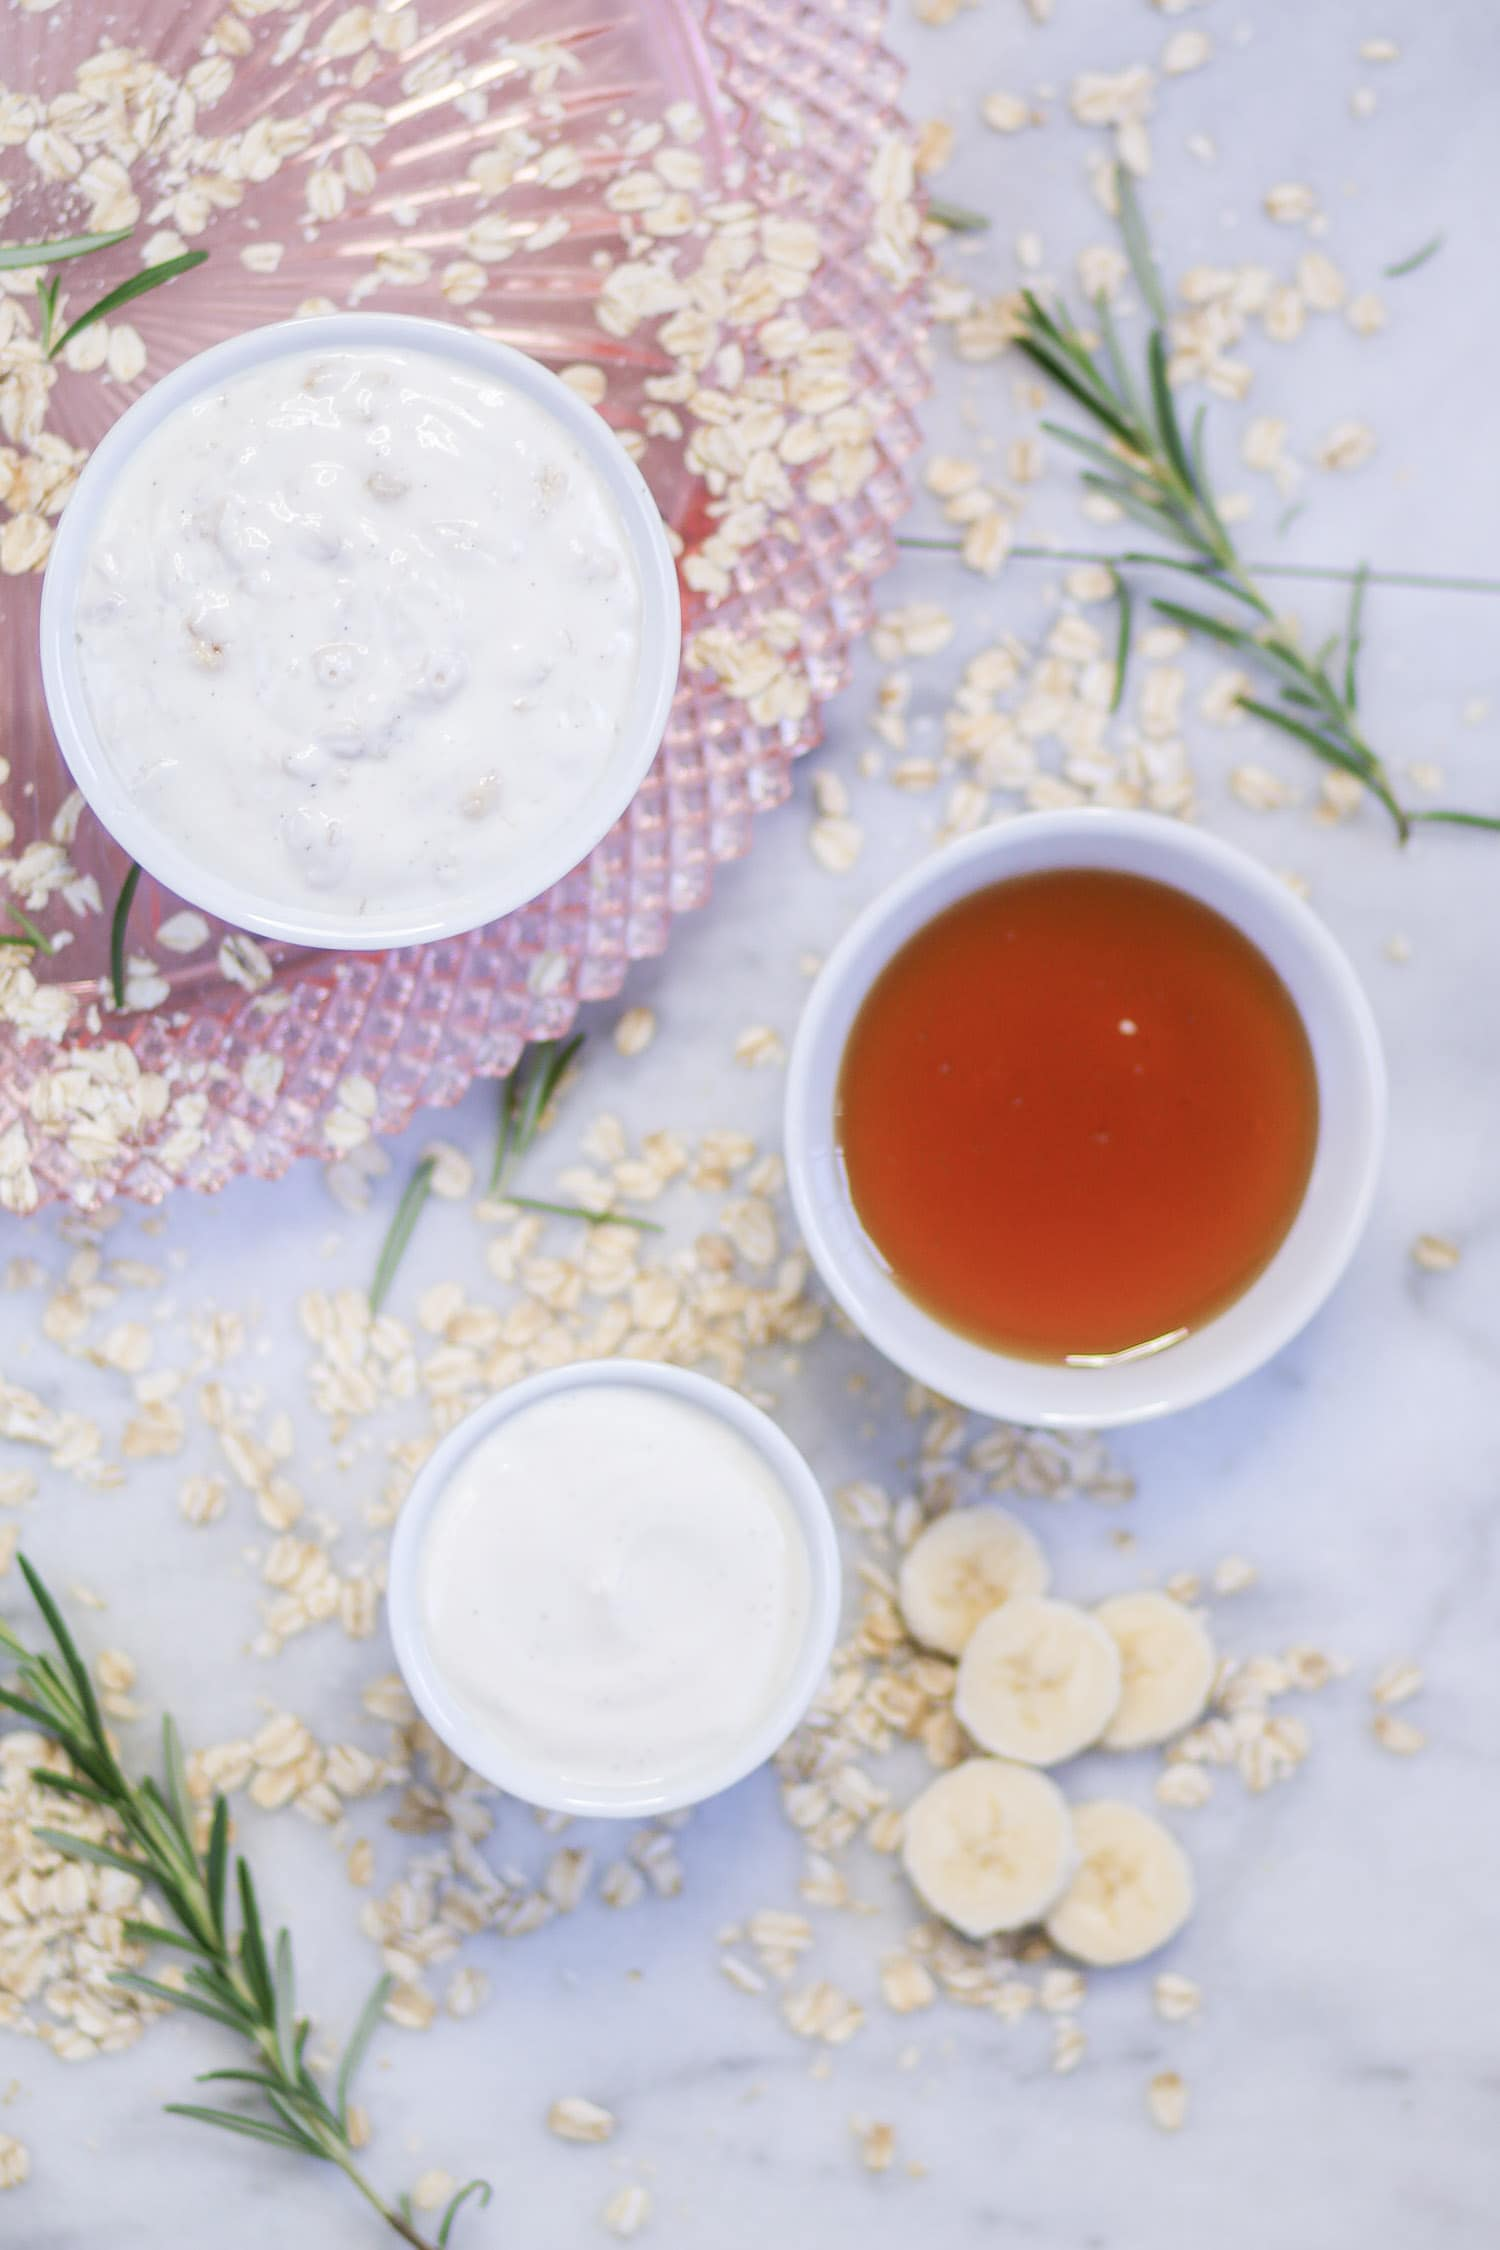 Learn how to soften and soothe your face at home with easy DIY moisturizing face mask recipe by beauty blogger Ashley Brooke which includes yogurt, oatmeal, and honey